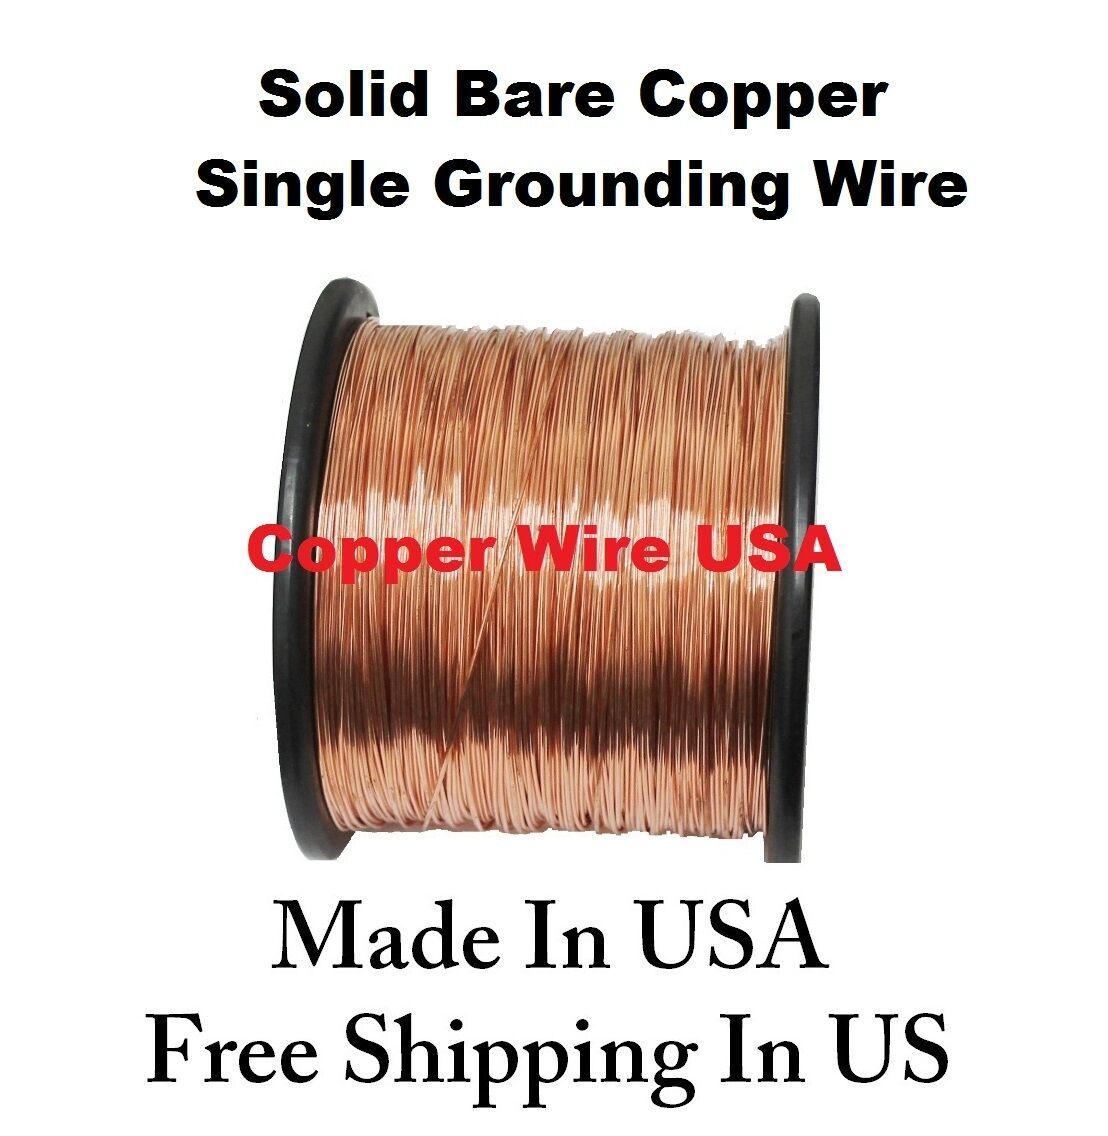 12 Awg Solid Bare Copper Single Grounding Wire 50 Ft 1 Lb Spool Electrical Norton Secured Powered By Verisign